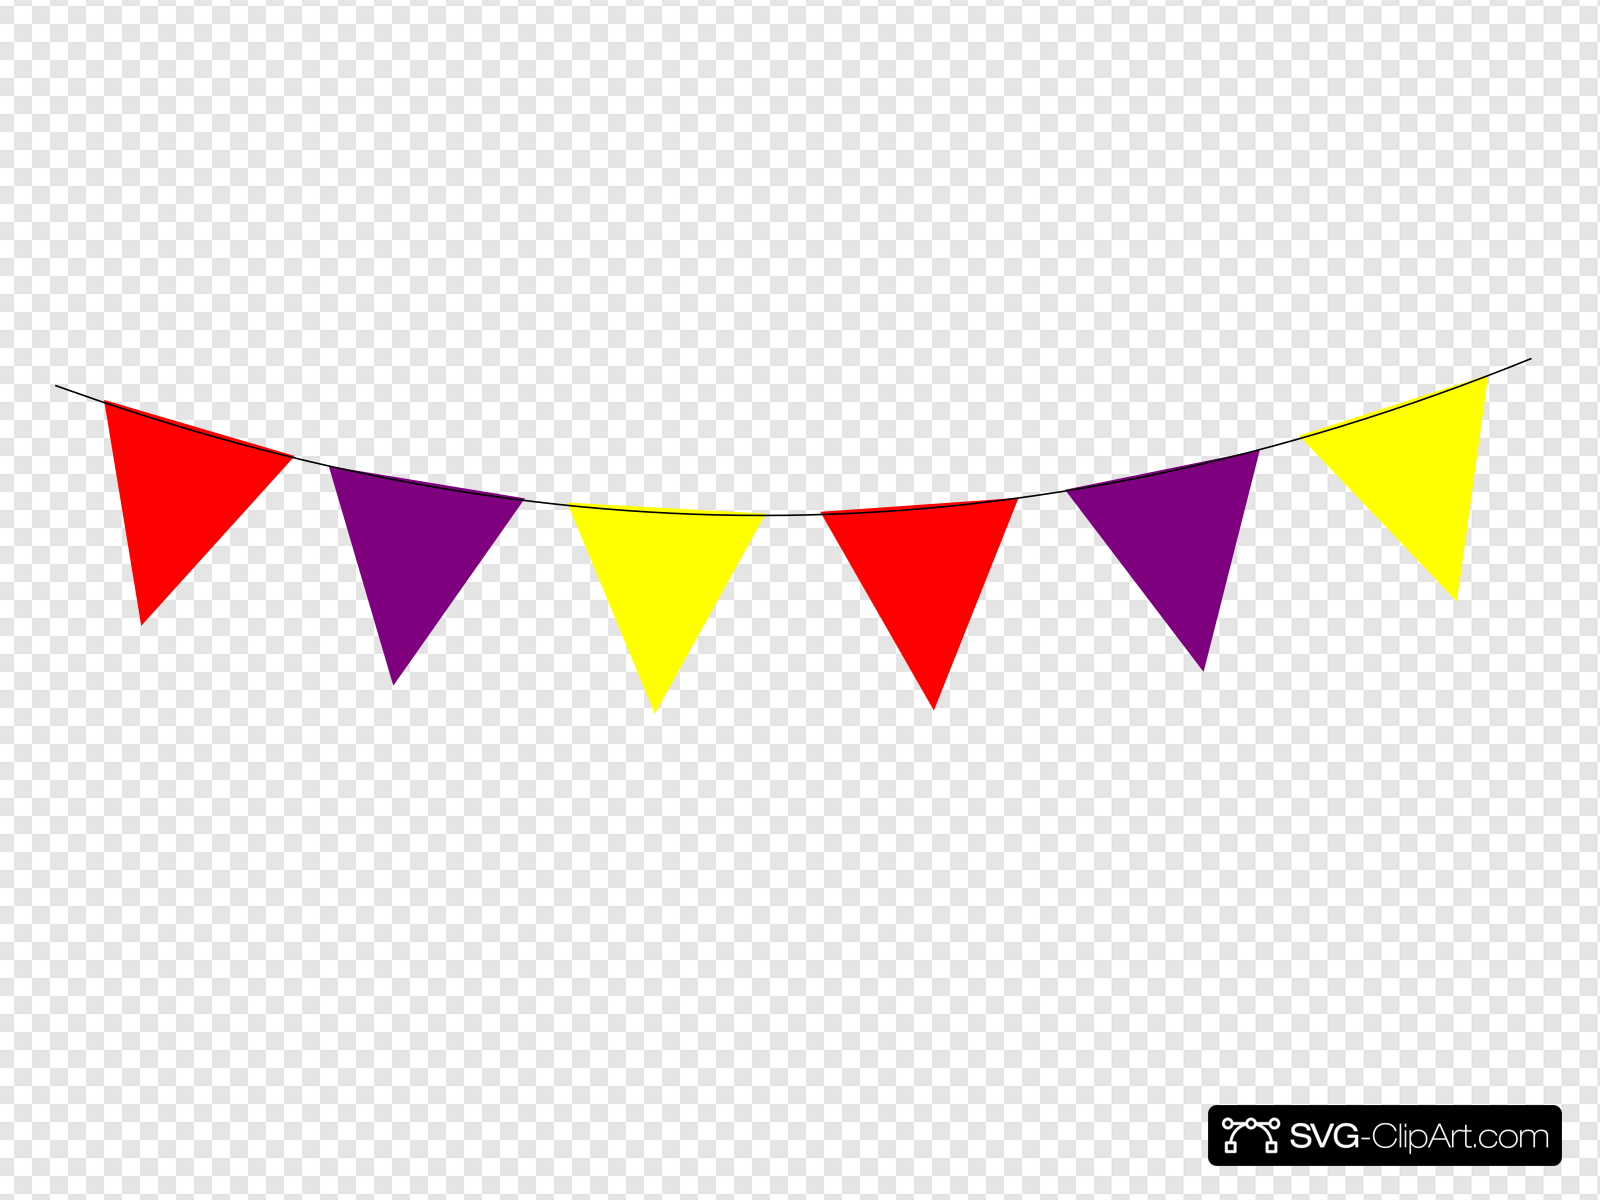 Red Purple Yellow Bunting Clip art, Icon and SVG.